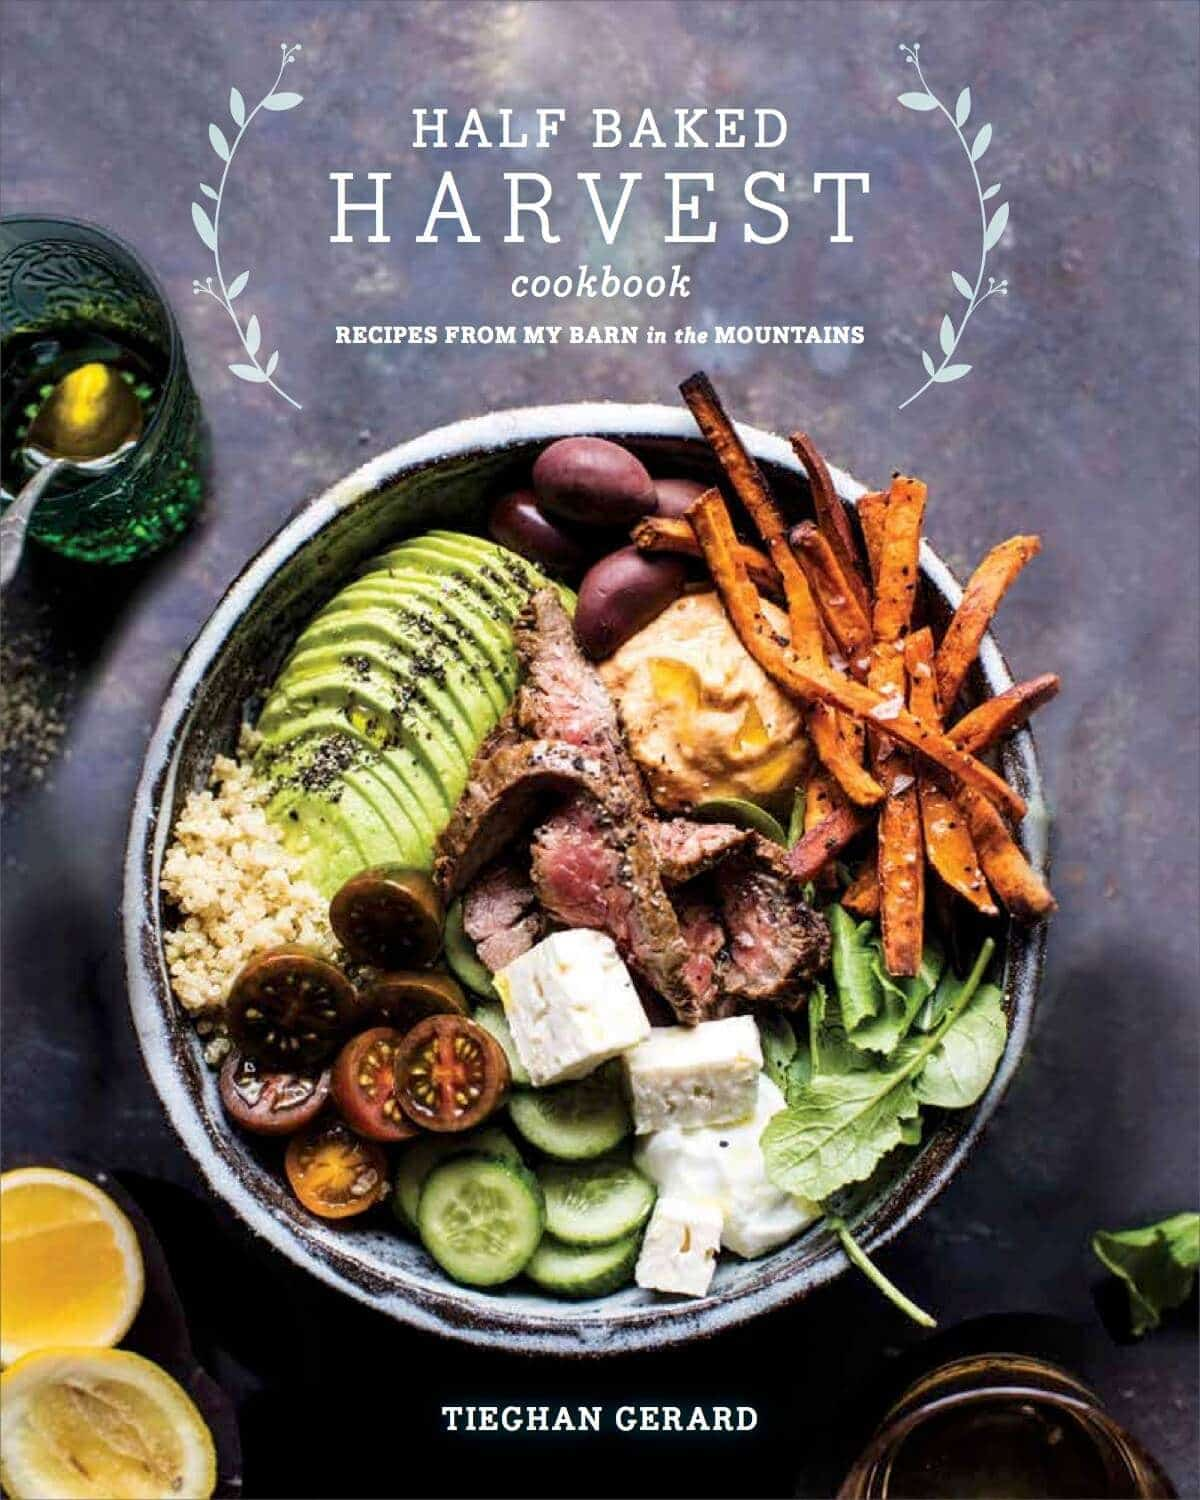 The Half Baked Harvest Cookbook: Cover Reveal and a Giveaway! | halfbakedharvest.com @hbharvest